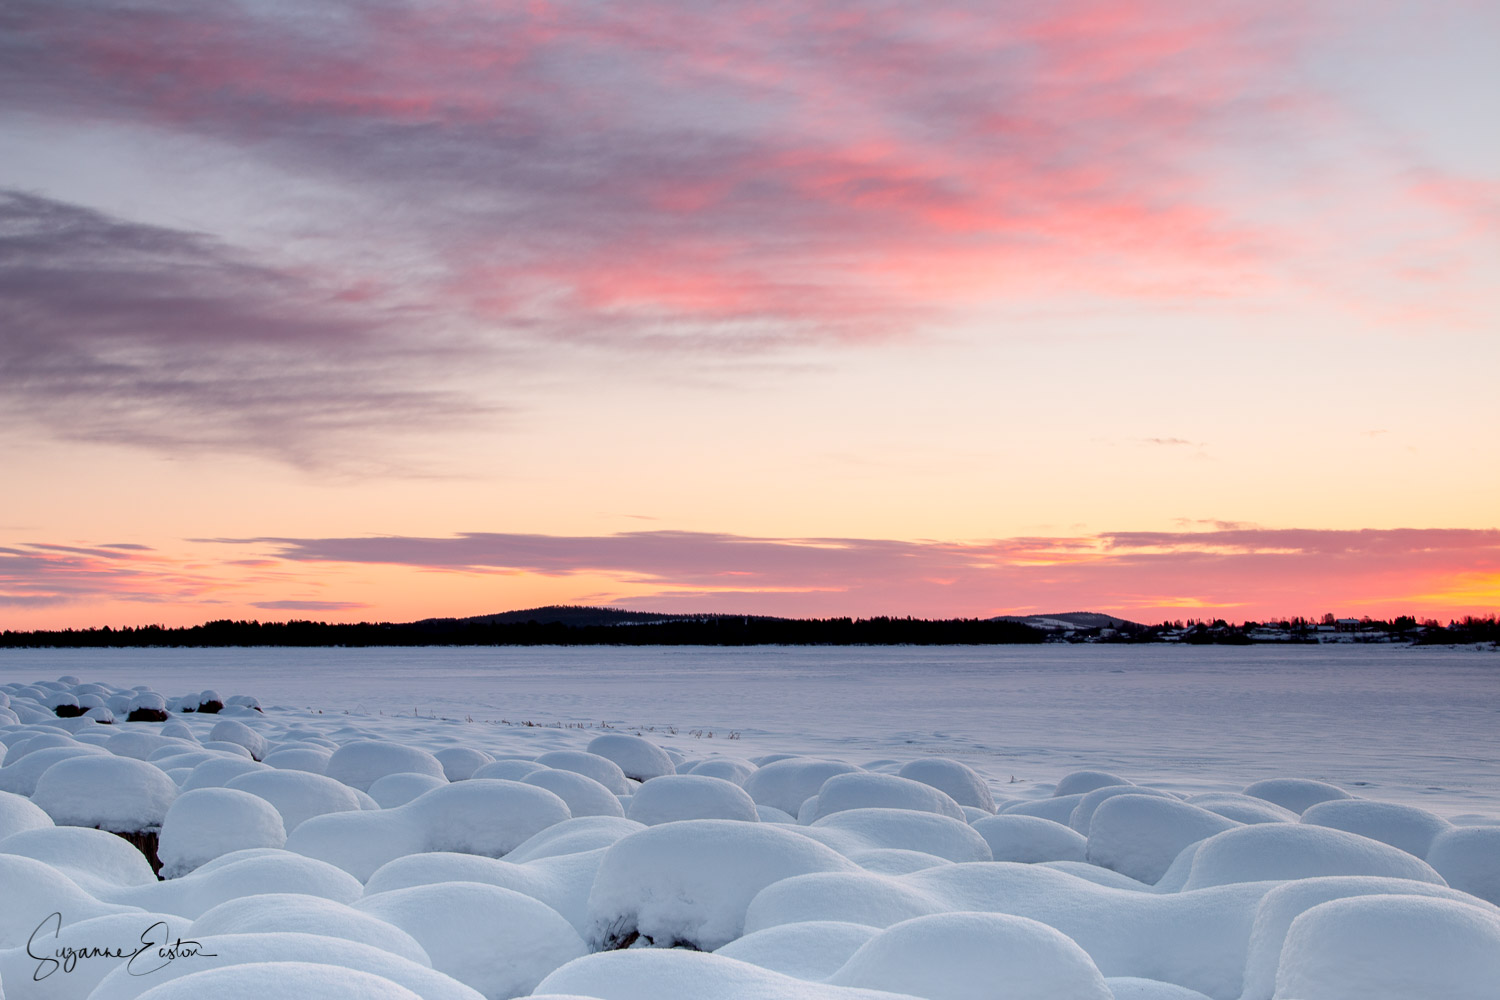 A frozen river with the reeds coated in snow looking like giant marshmallows